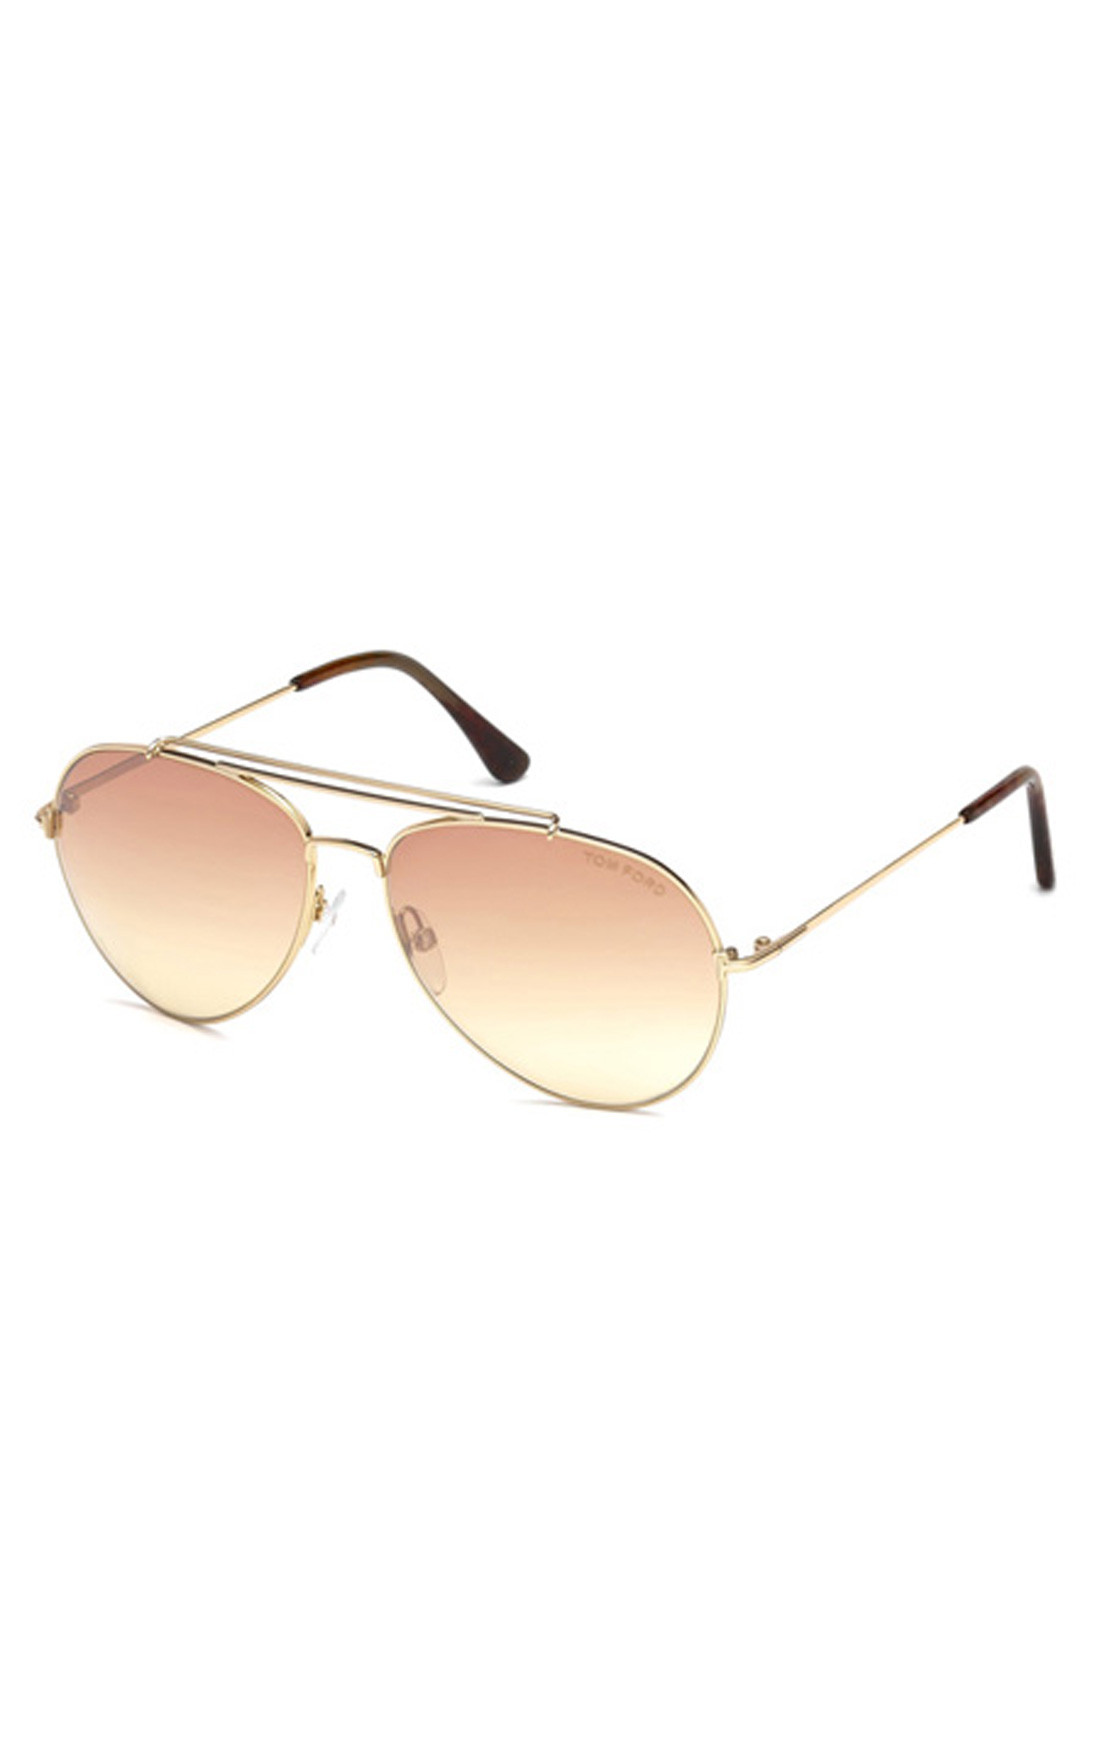 Tom Ford - Indiana Shiny Rose Gold Aviator Sunglasses (FT04976028Z)